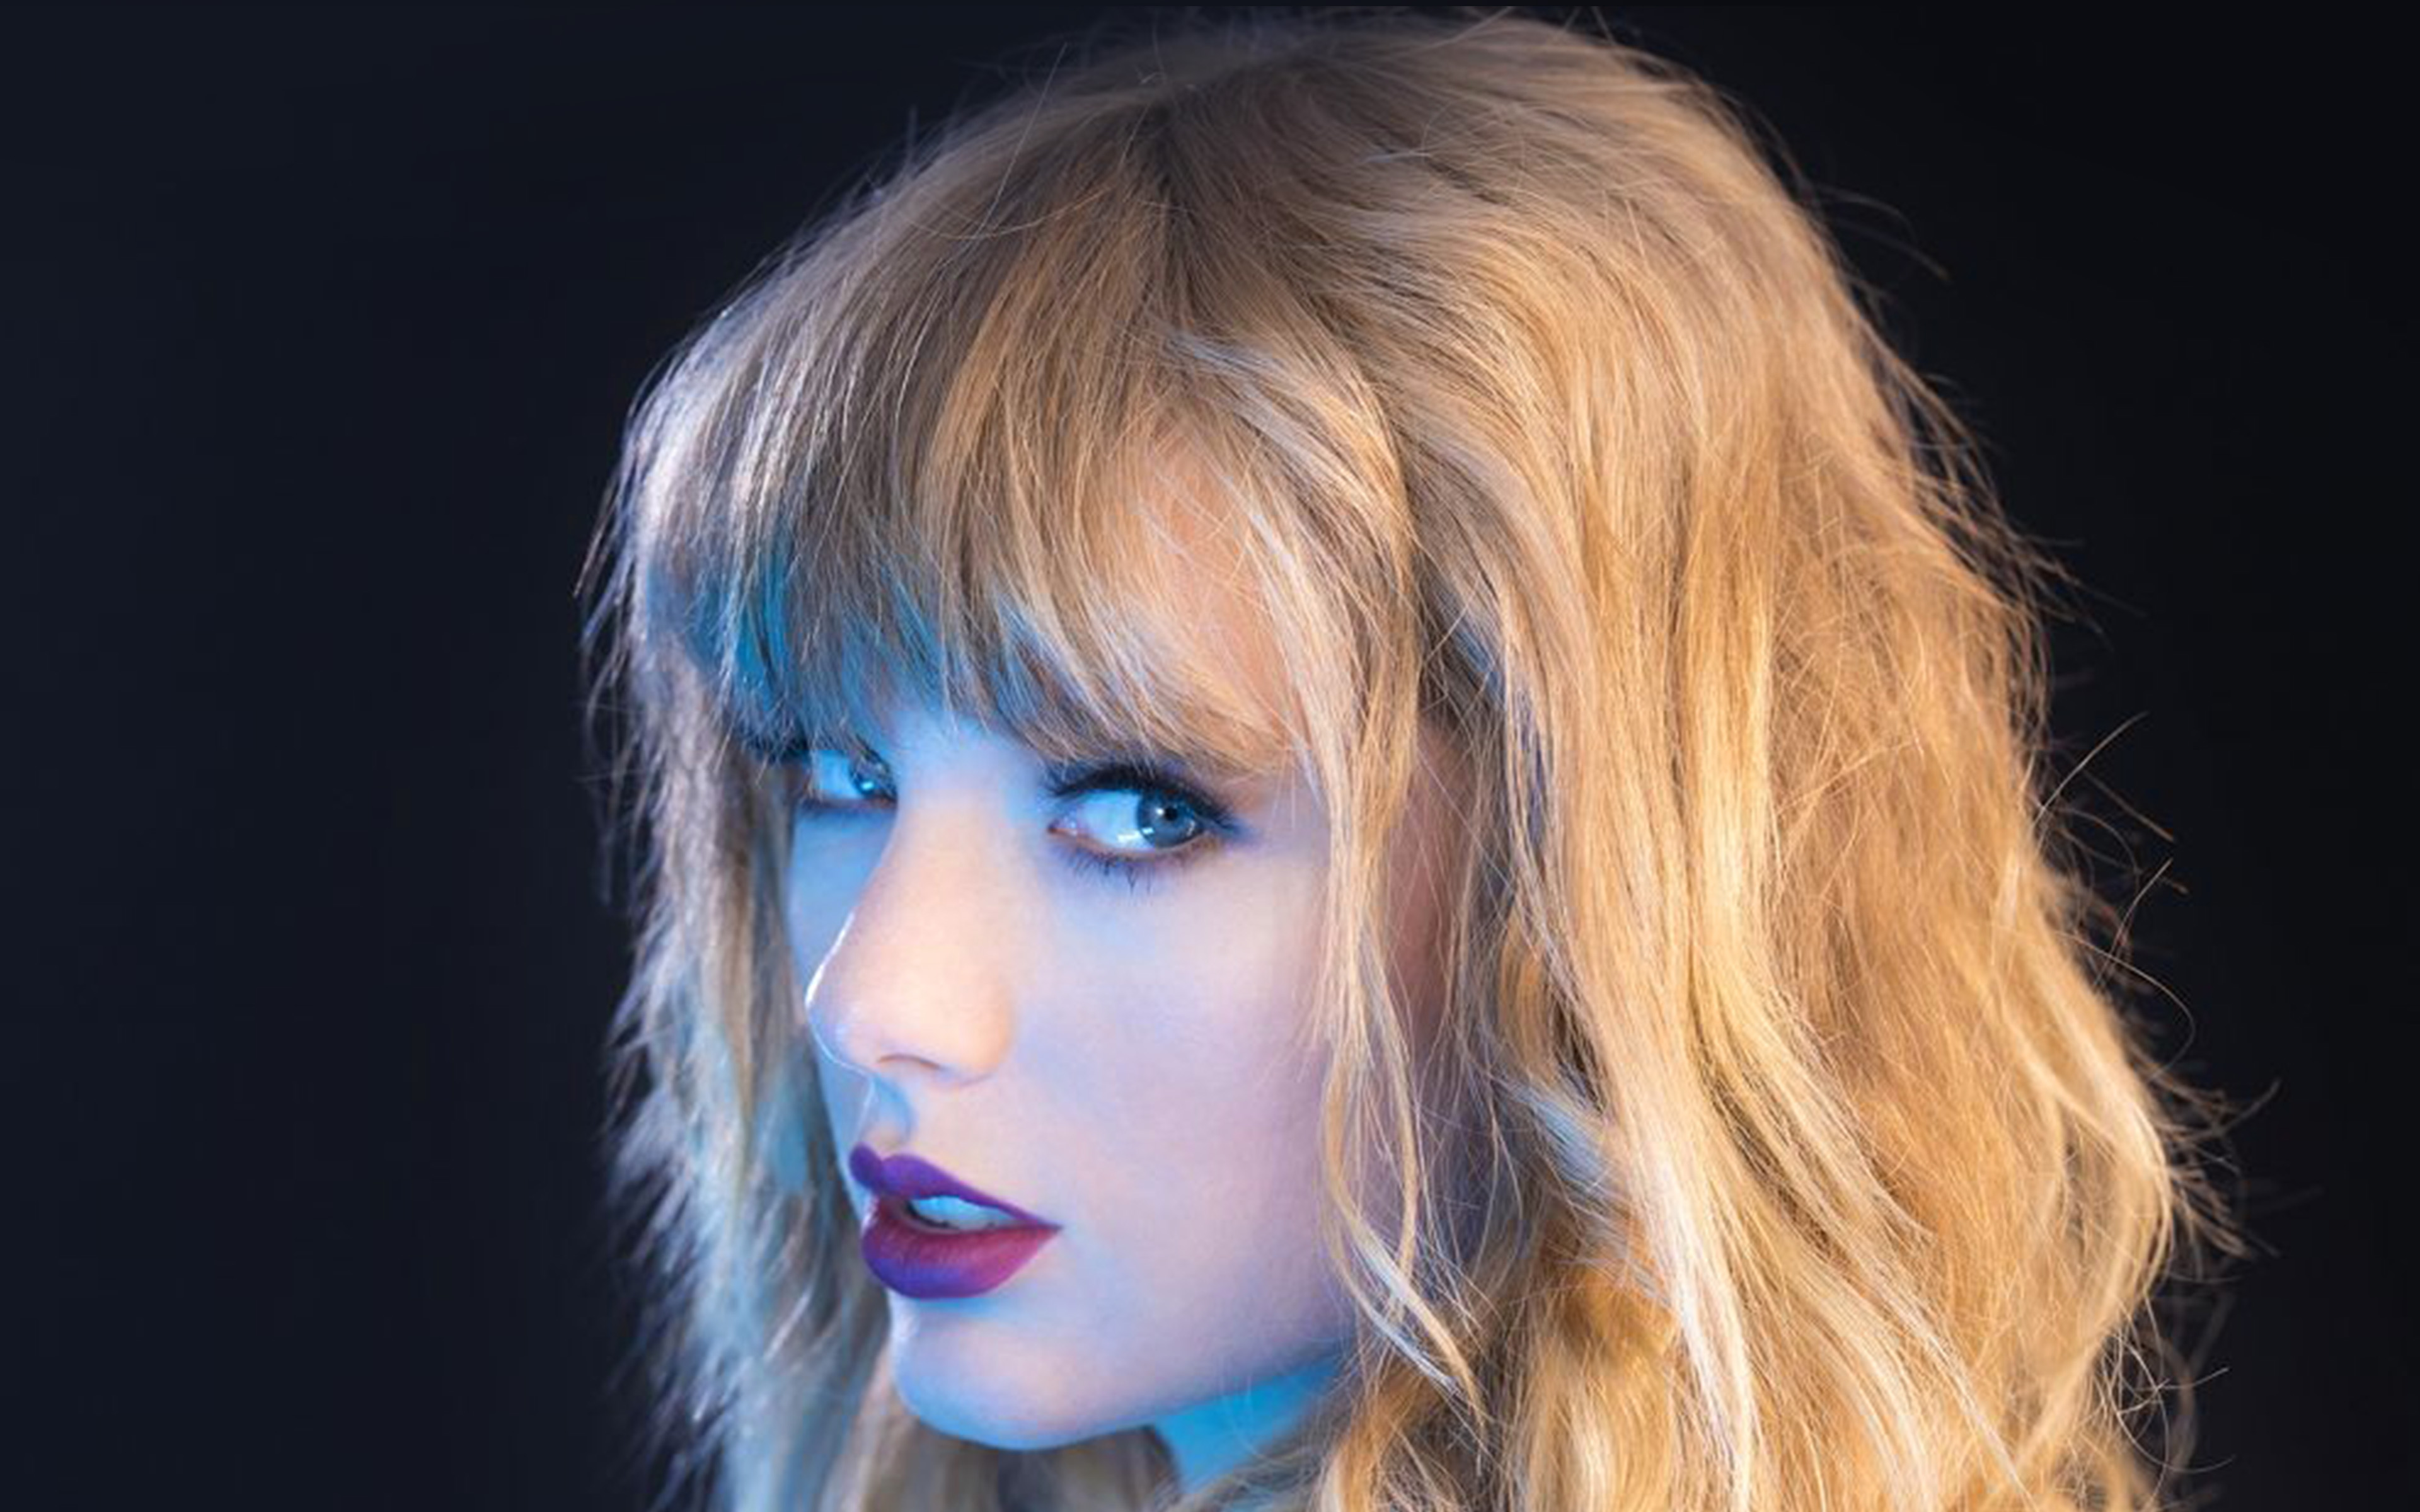 Fall Wallpaper For Iphone 5 Hq22 Taylor Swift Blue Sexy Singer Wallpaper